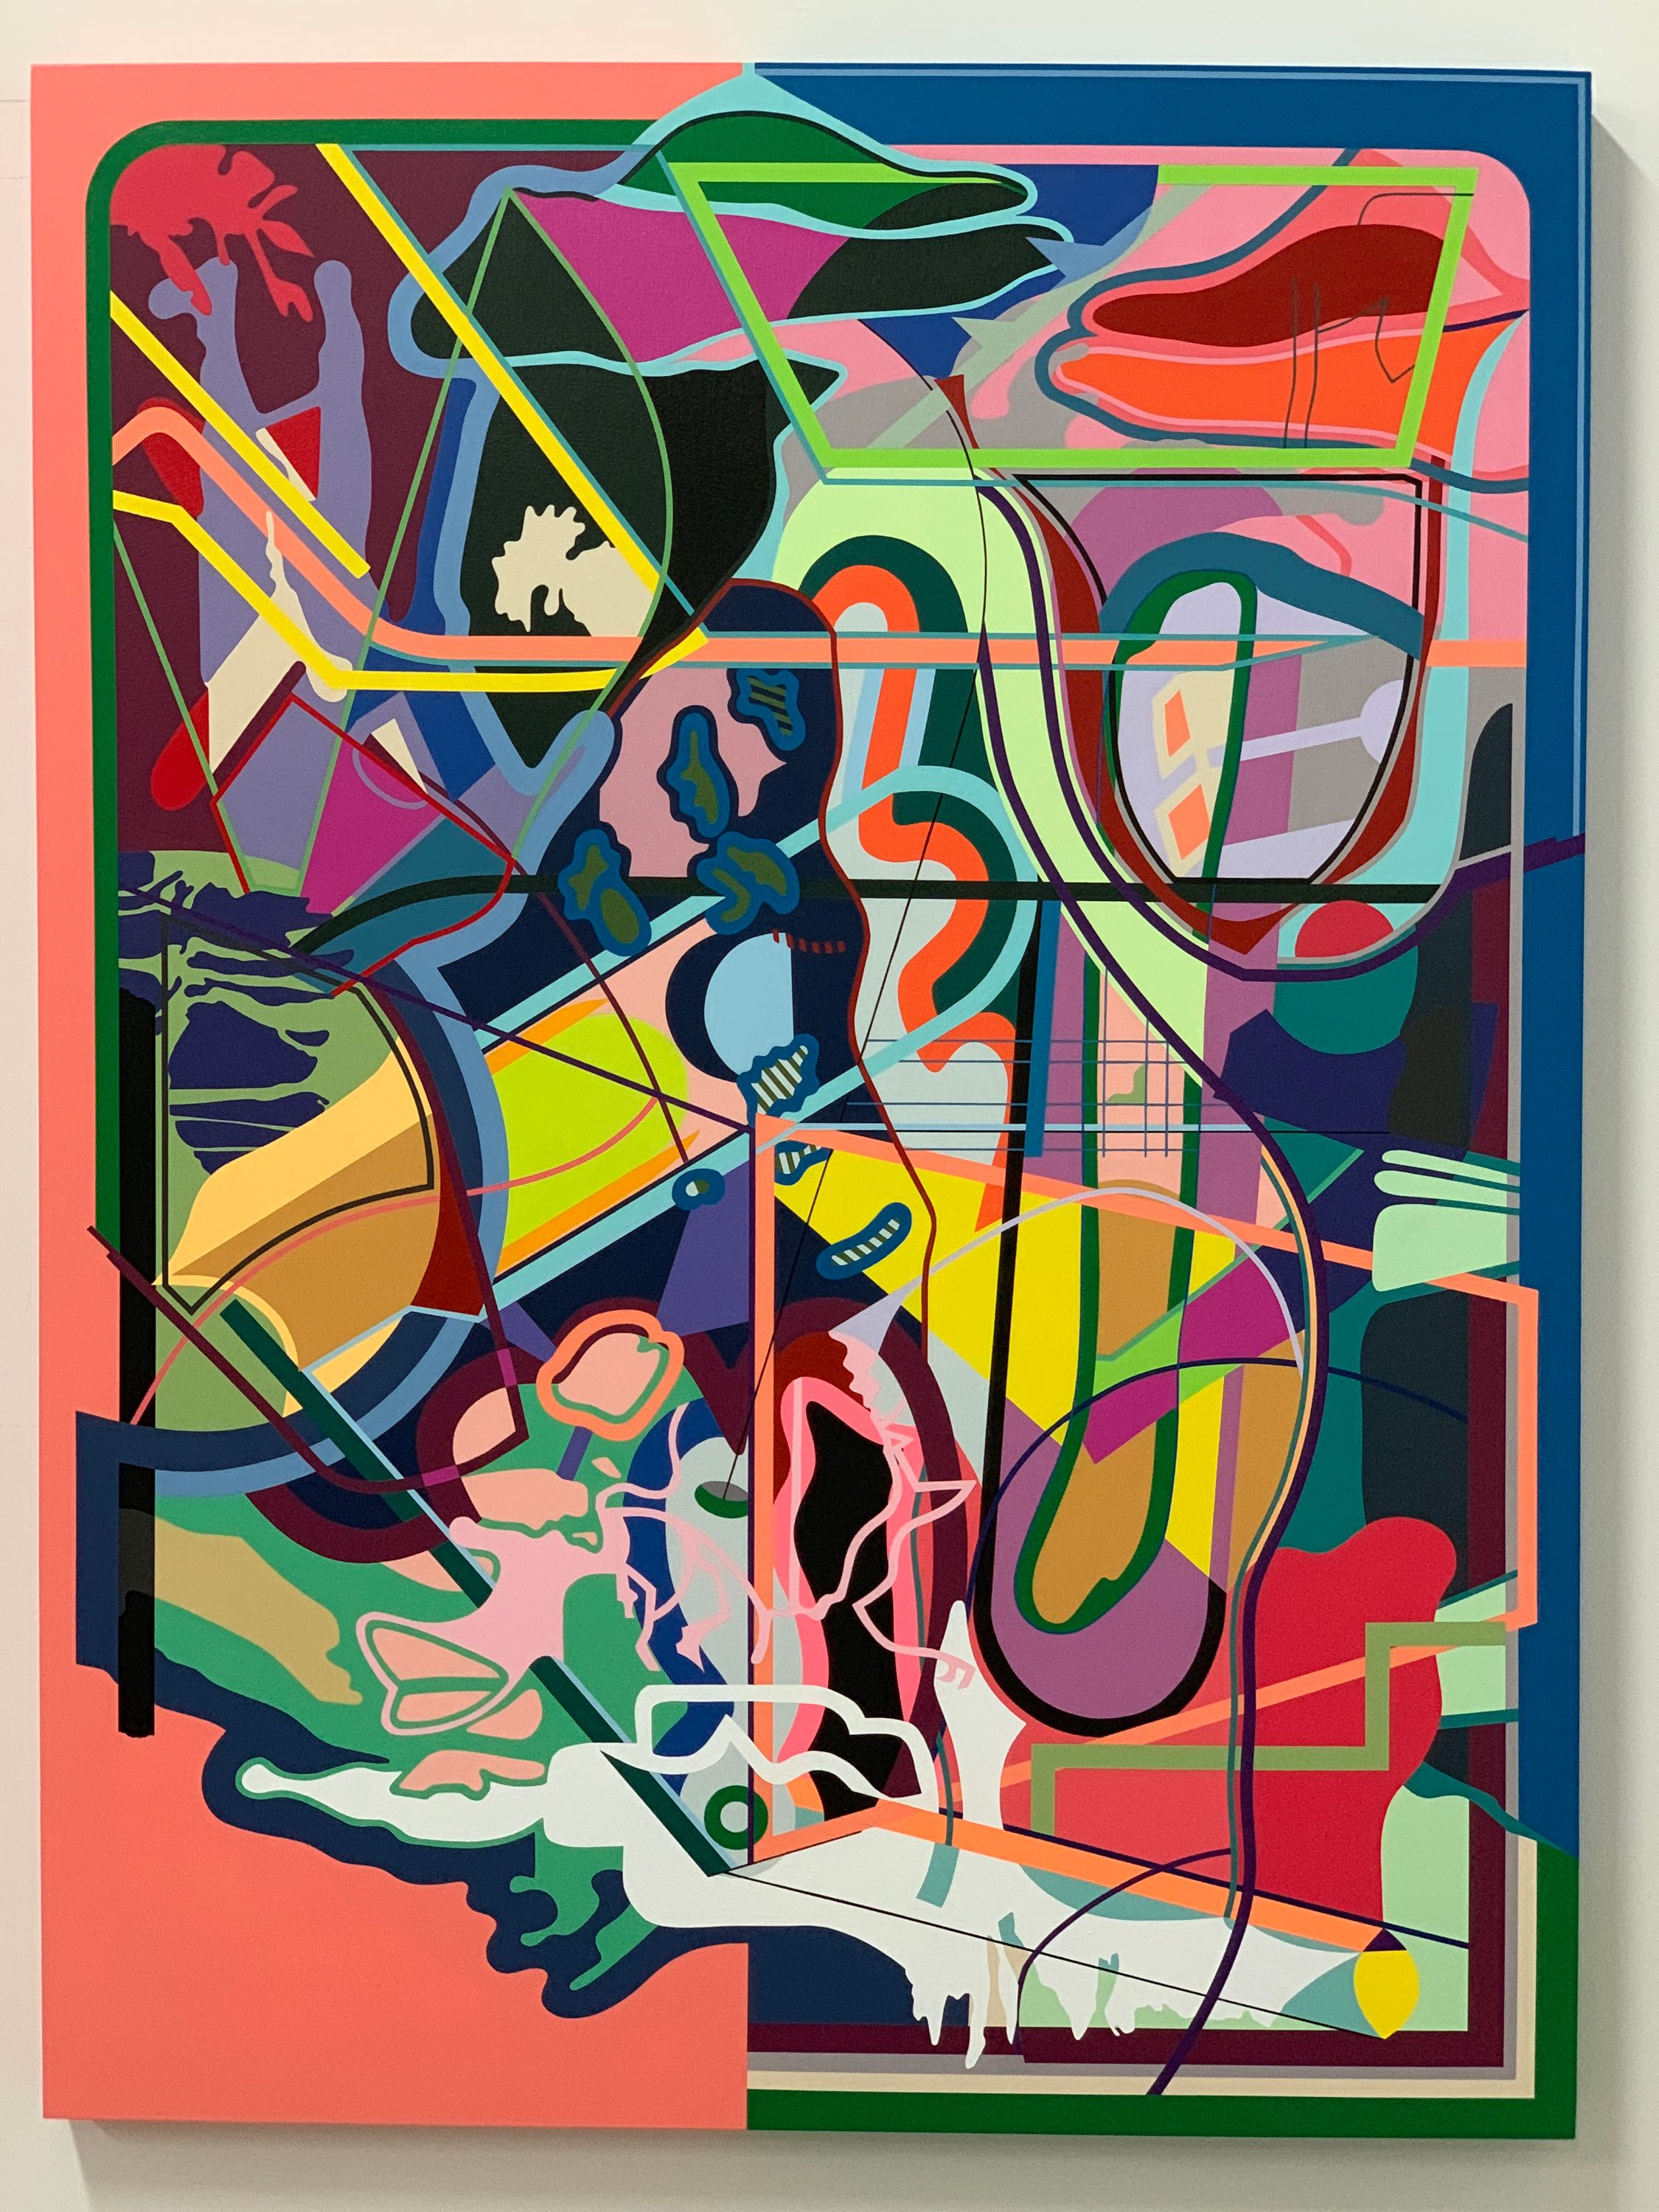 Alexandra Seiler, Tropic Upheaval, 2019, acrylic on panel, 40 x 30 inches.JPG